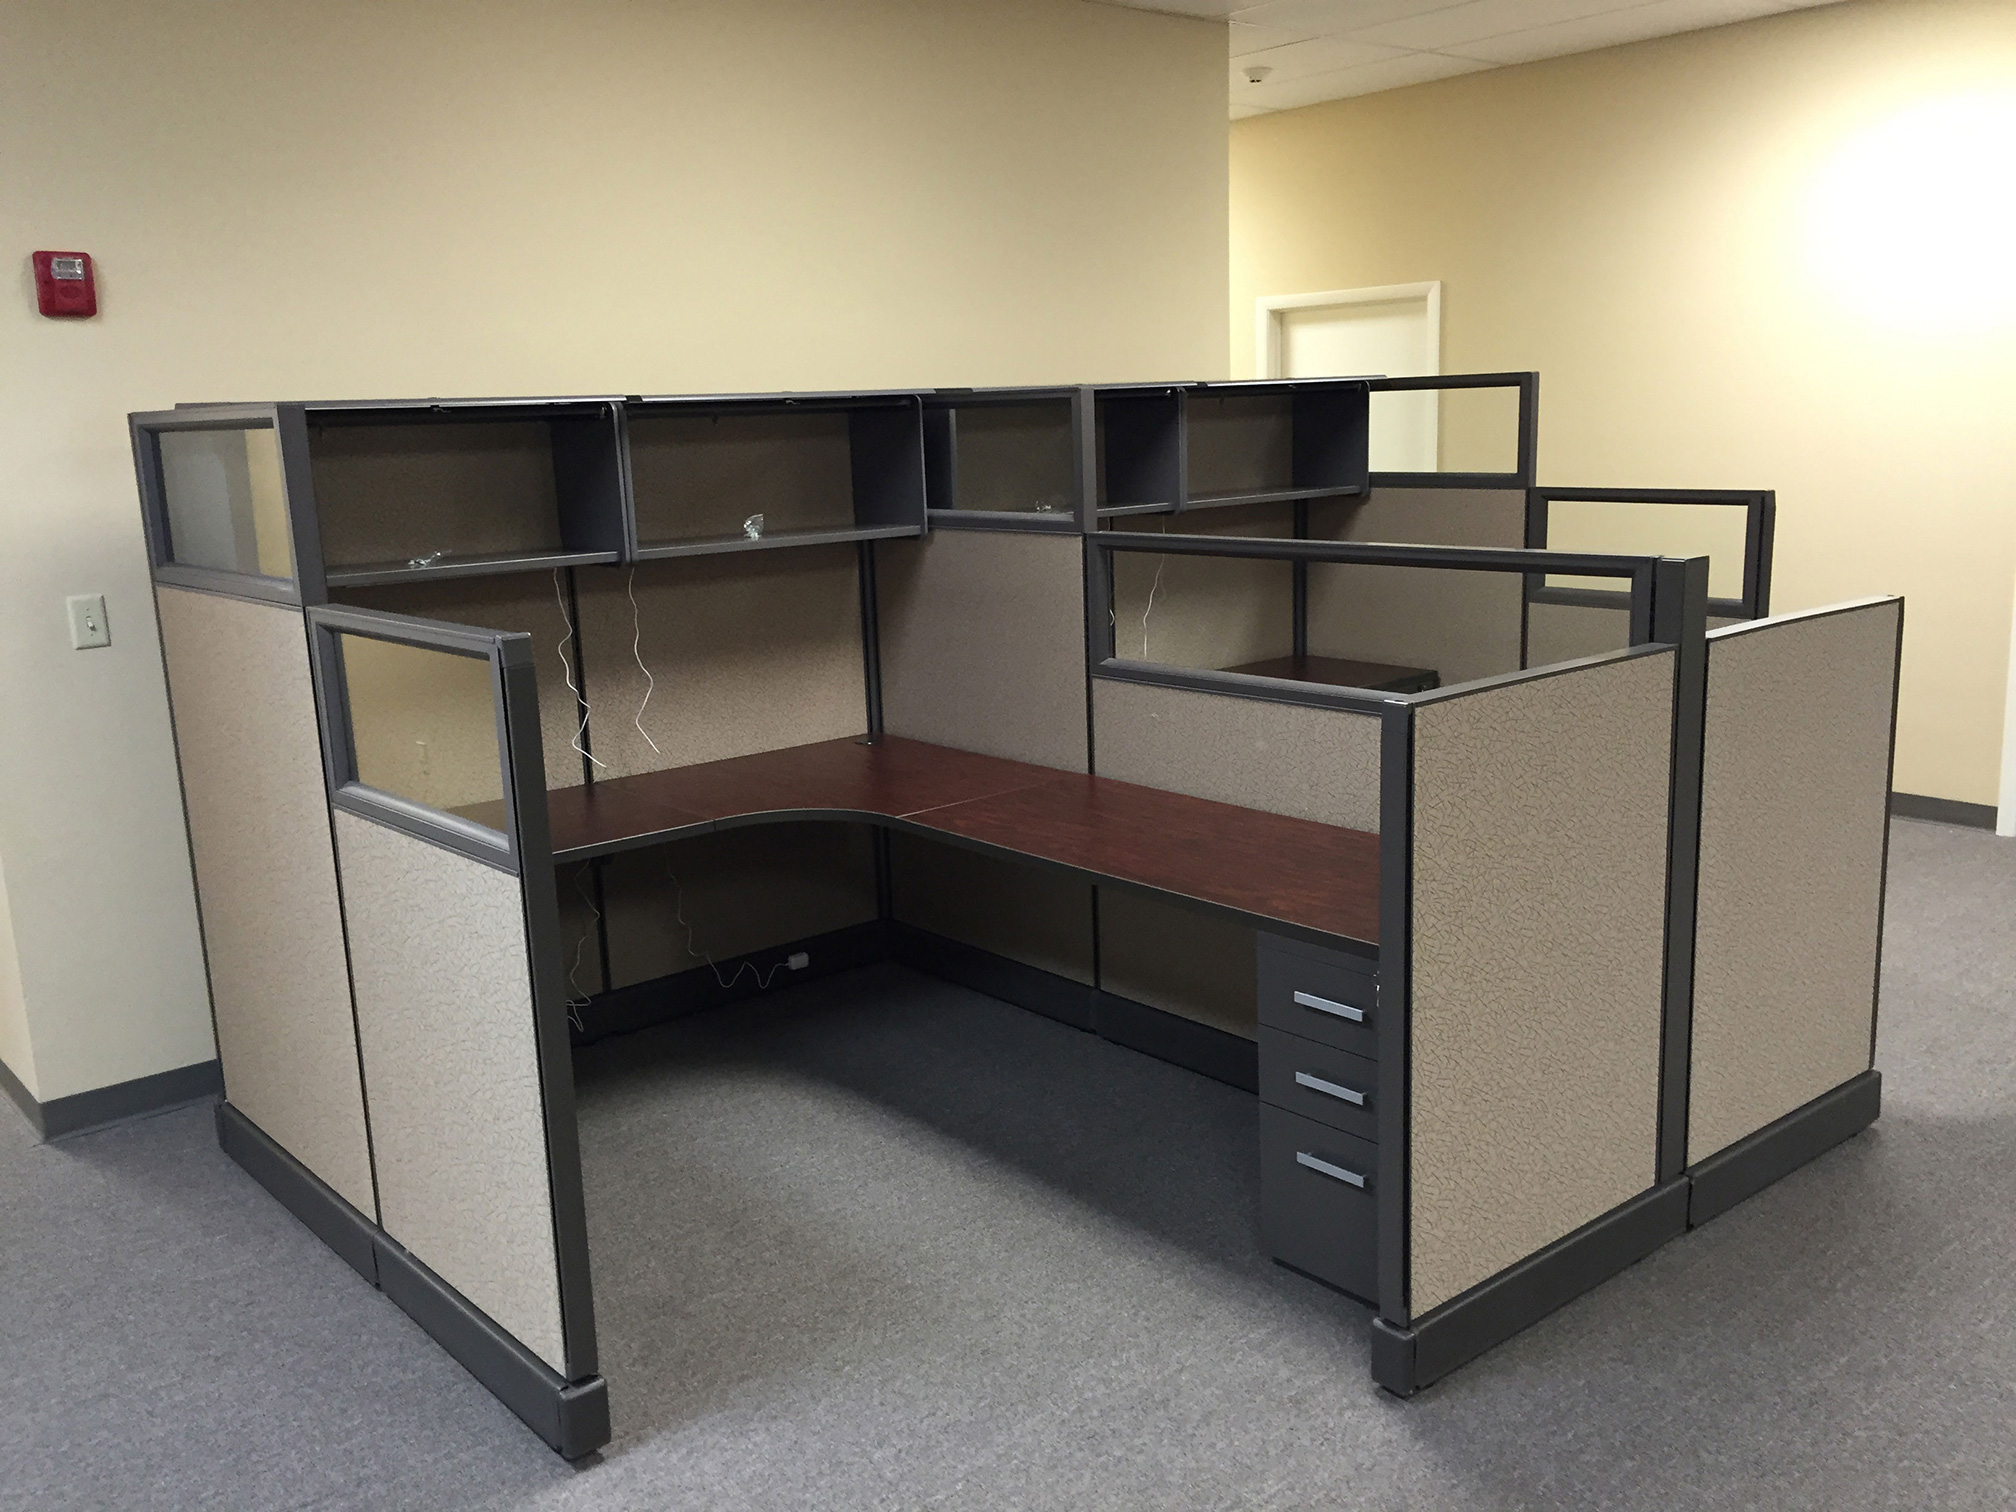 office-cubicles-for-sale-in-delray-beach-florida-3-1.jpg